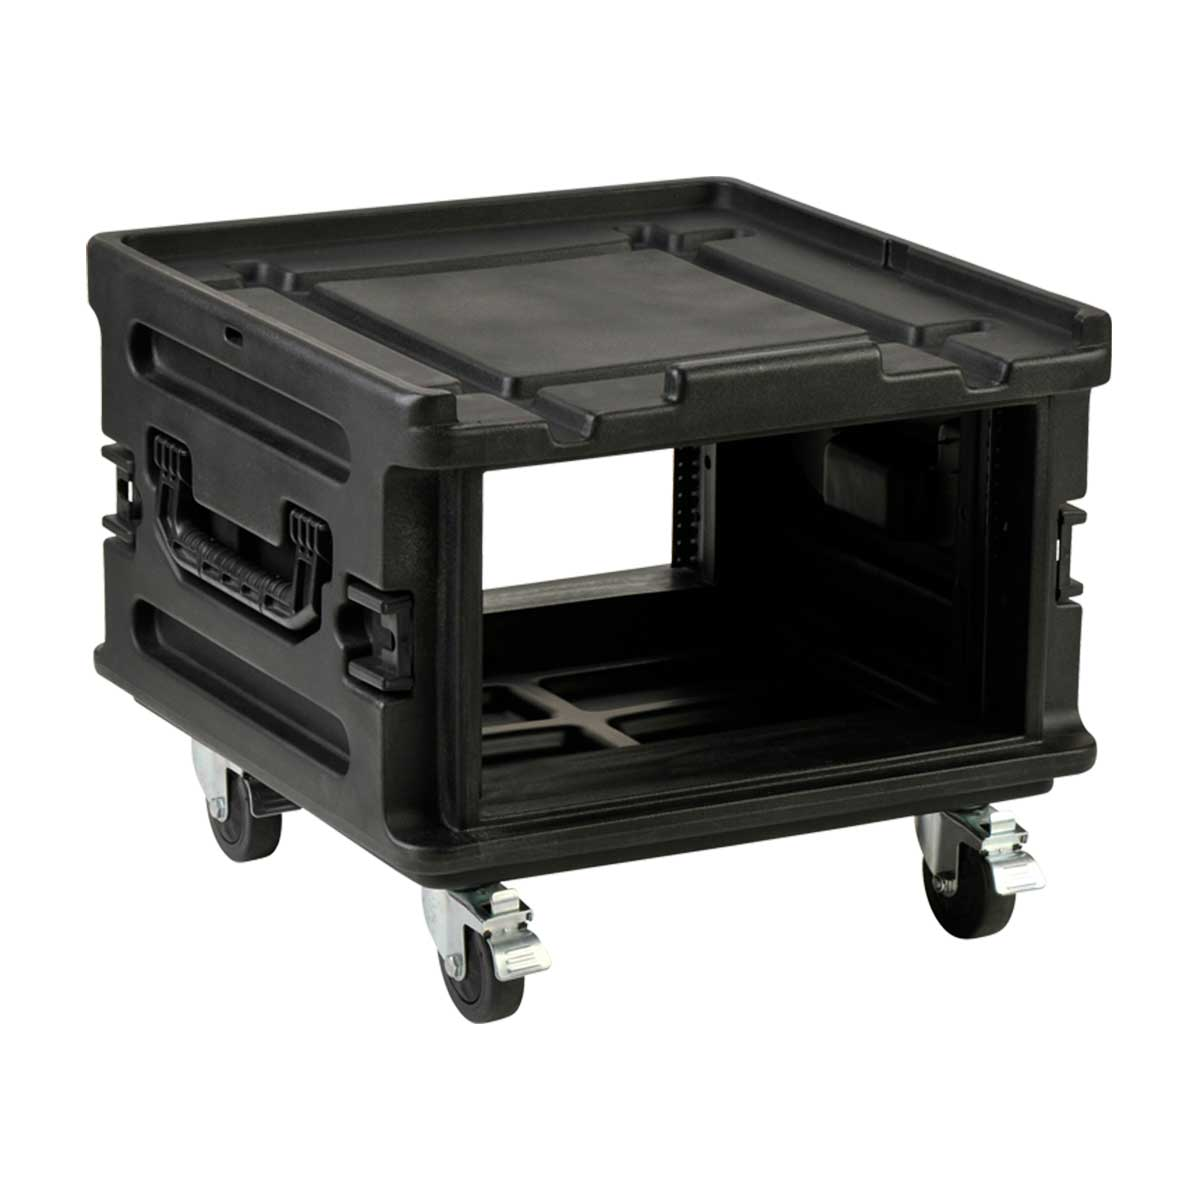 SKB Roto Molded Rack Expansion Case (with wheels)